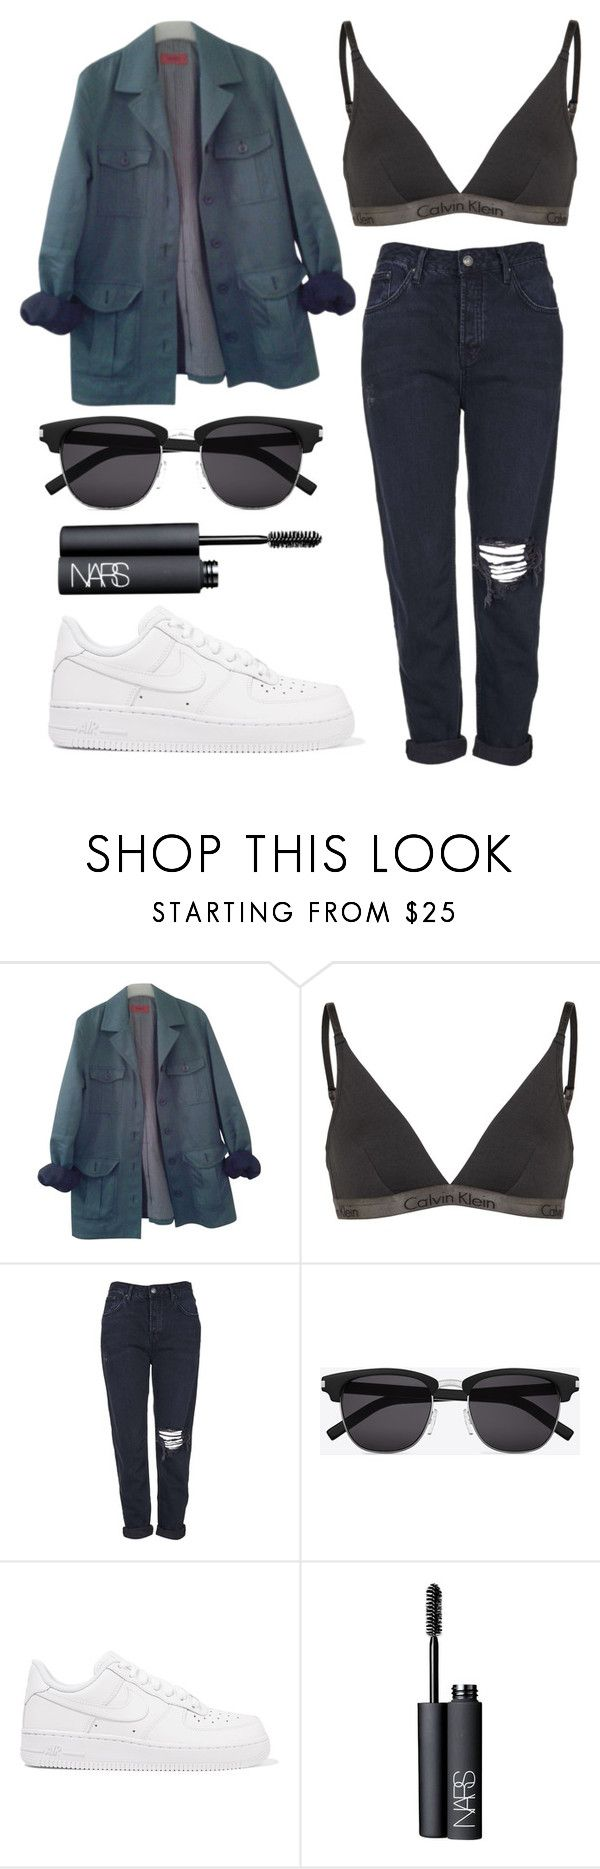 """Untitled #522"" by feel-my-freedom ❤ liked on Polyvore featuring HUGO, Calvin Klein, Topshop, Yves Saint Laurent, NIKE and NARS Cosmetics"